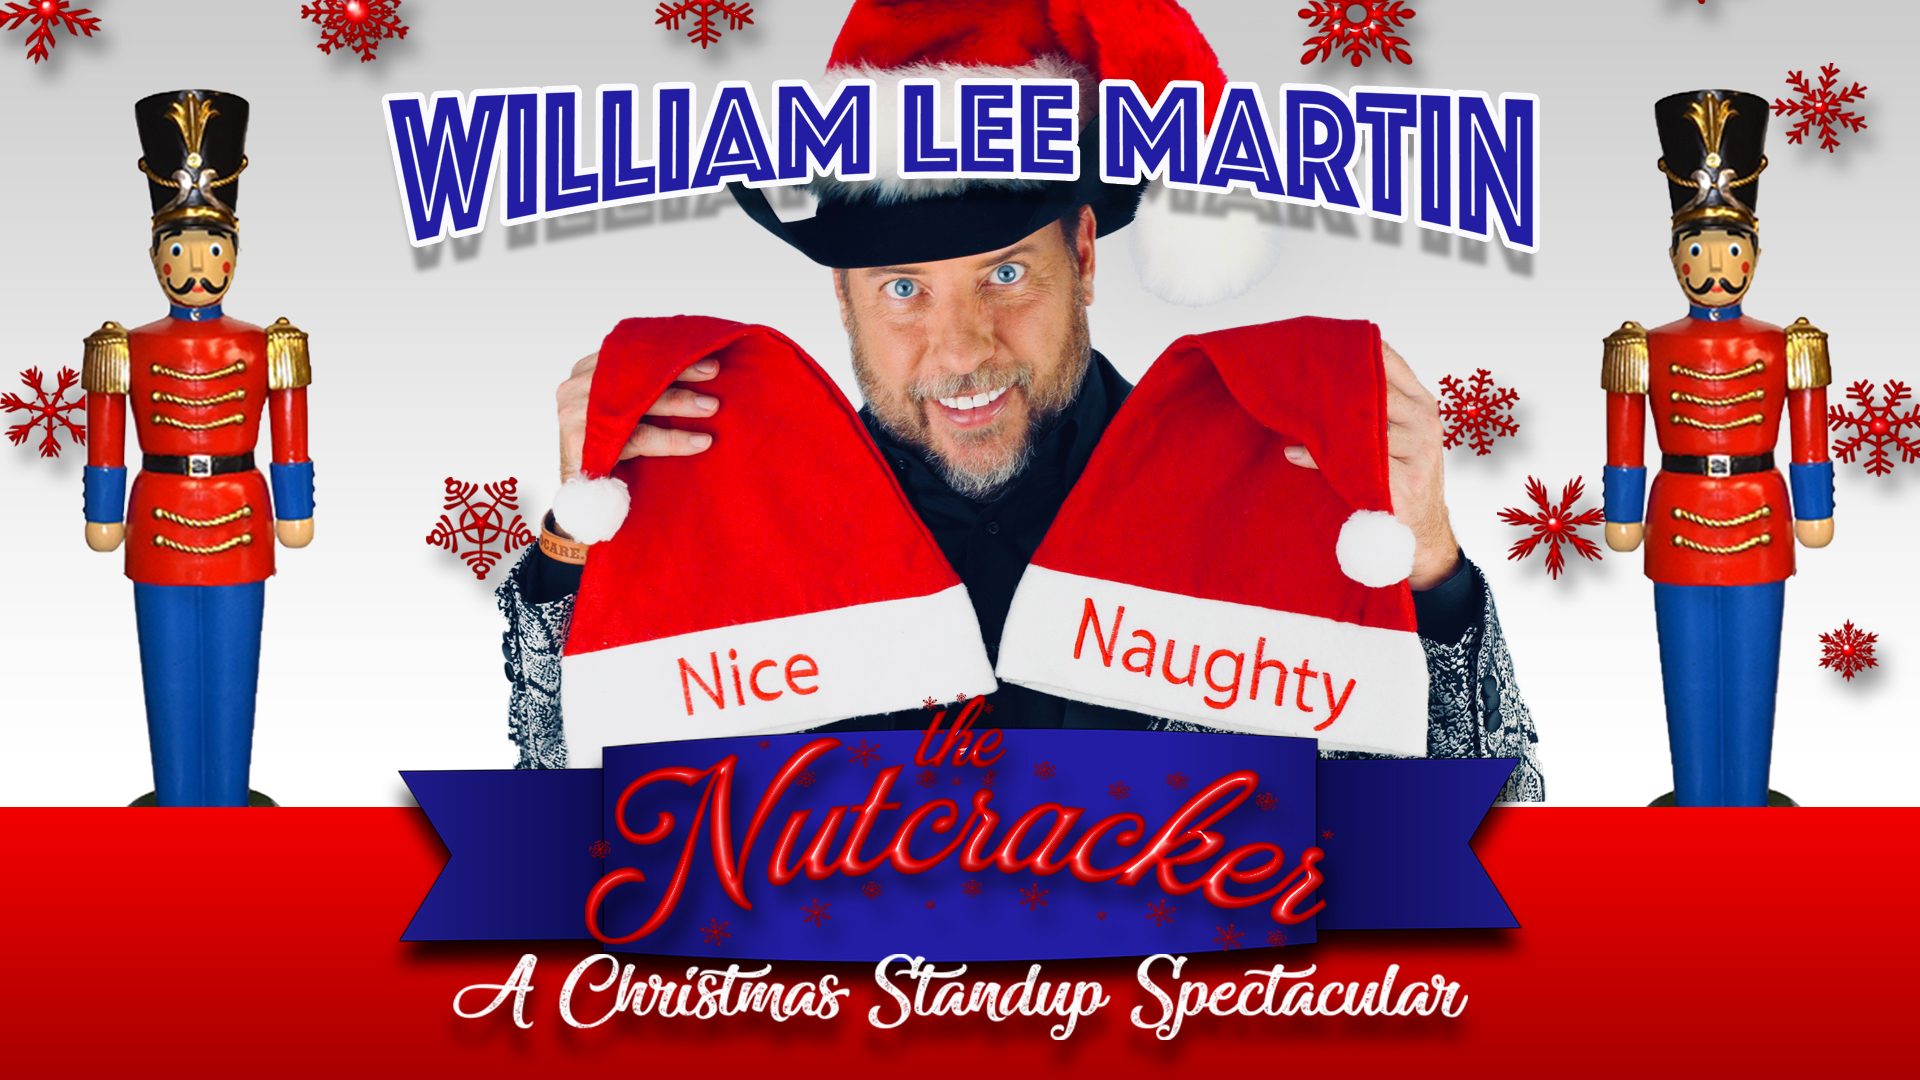 William Lee Martin: The Nutcracker - A Christmas Stand-up Comedy Spectacular